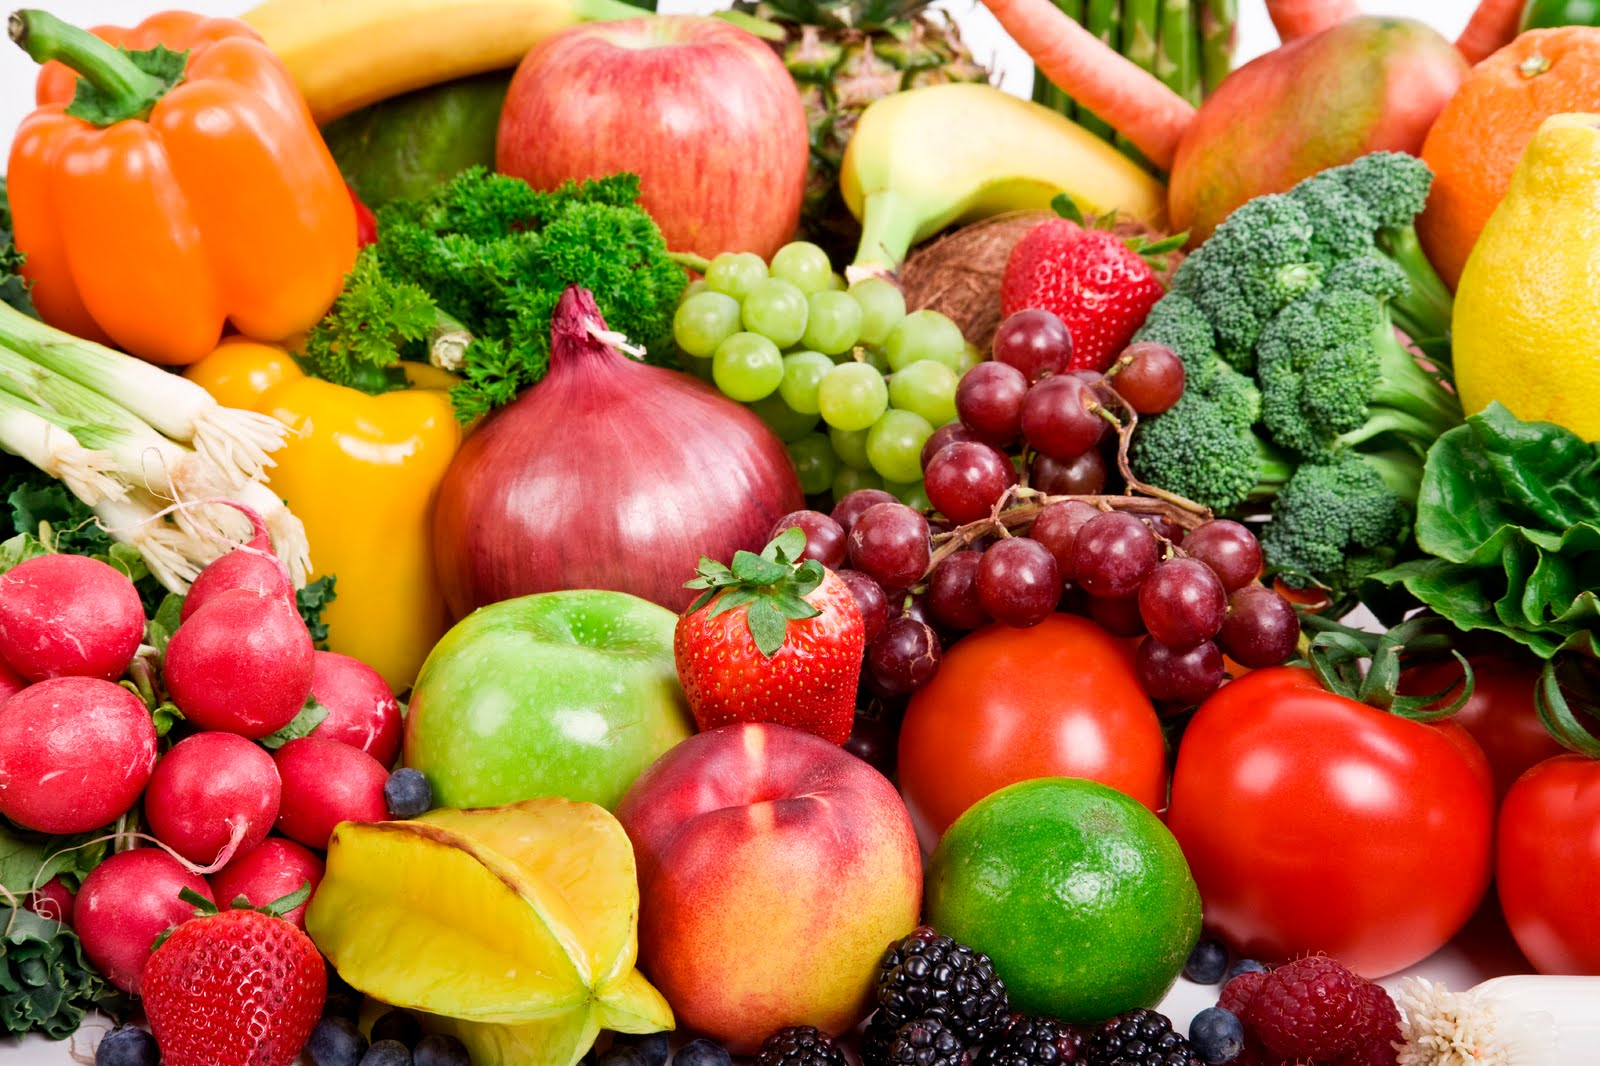 Decreasing nutritional values in food